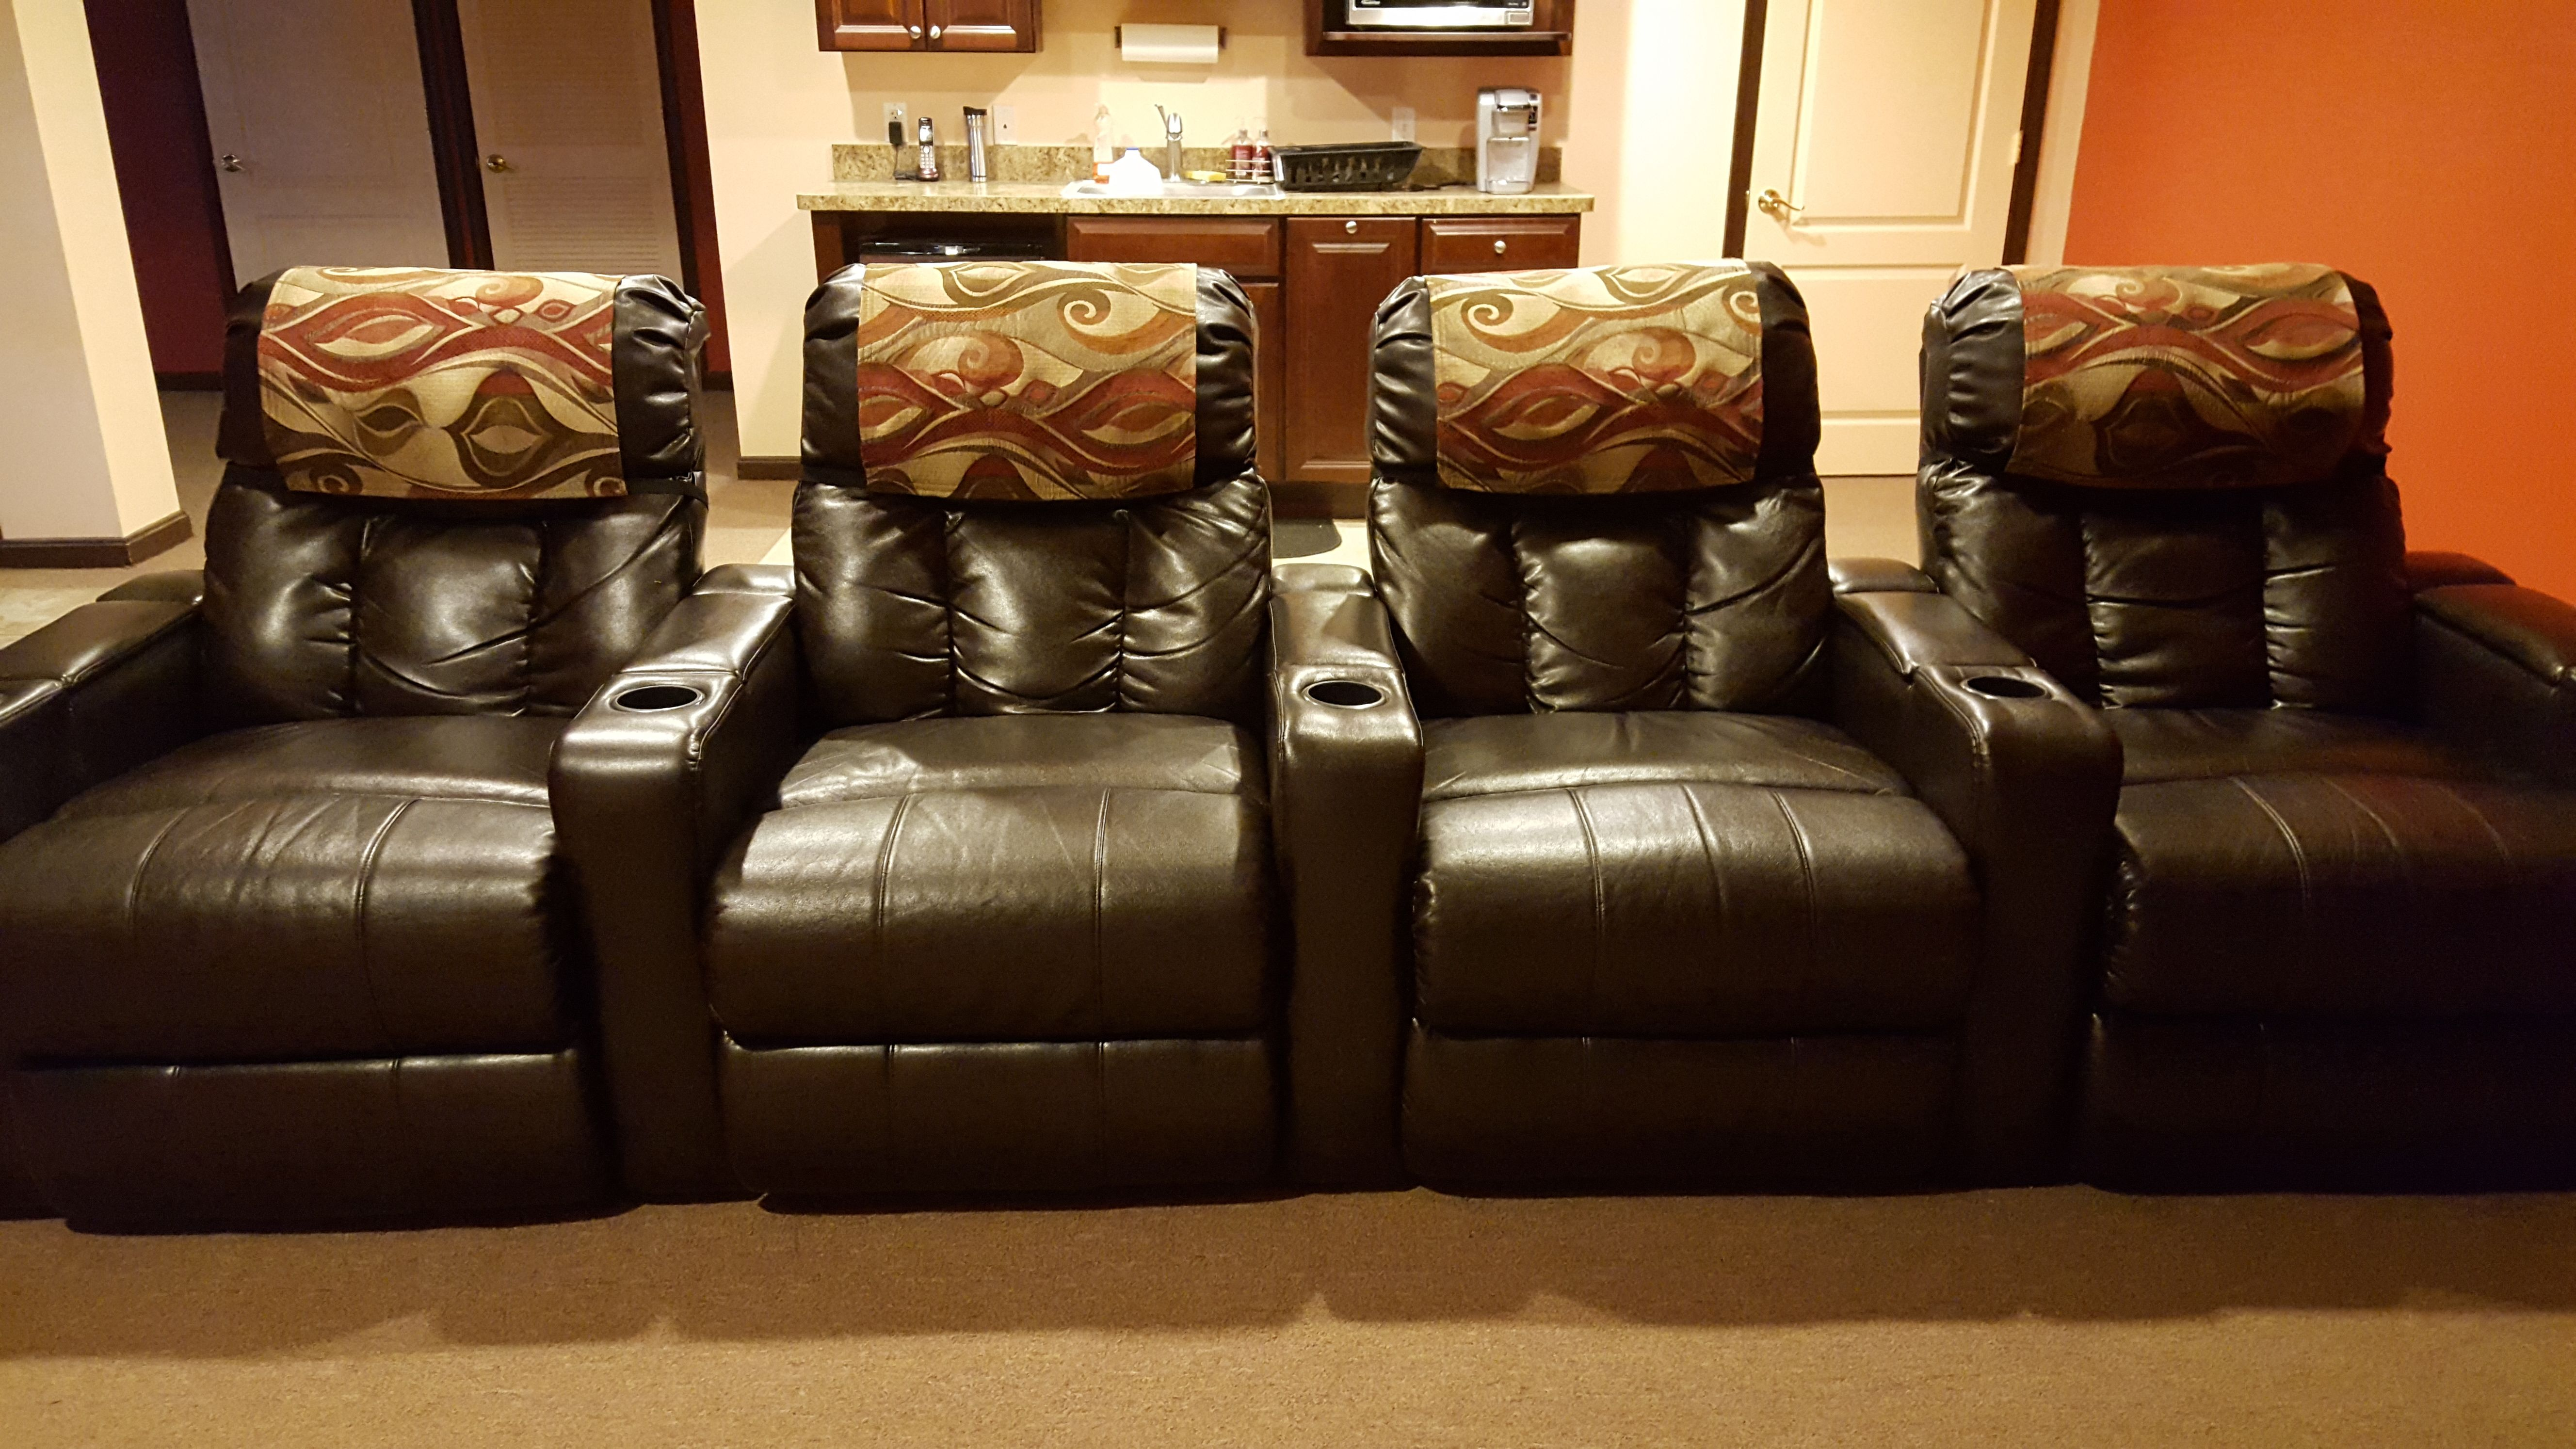 Stitch N Art By Michelle Did It Again! Rich Spice Chair Covers